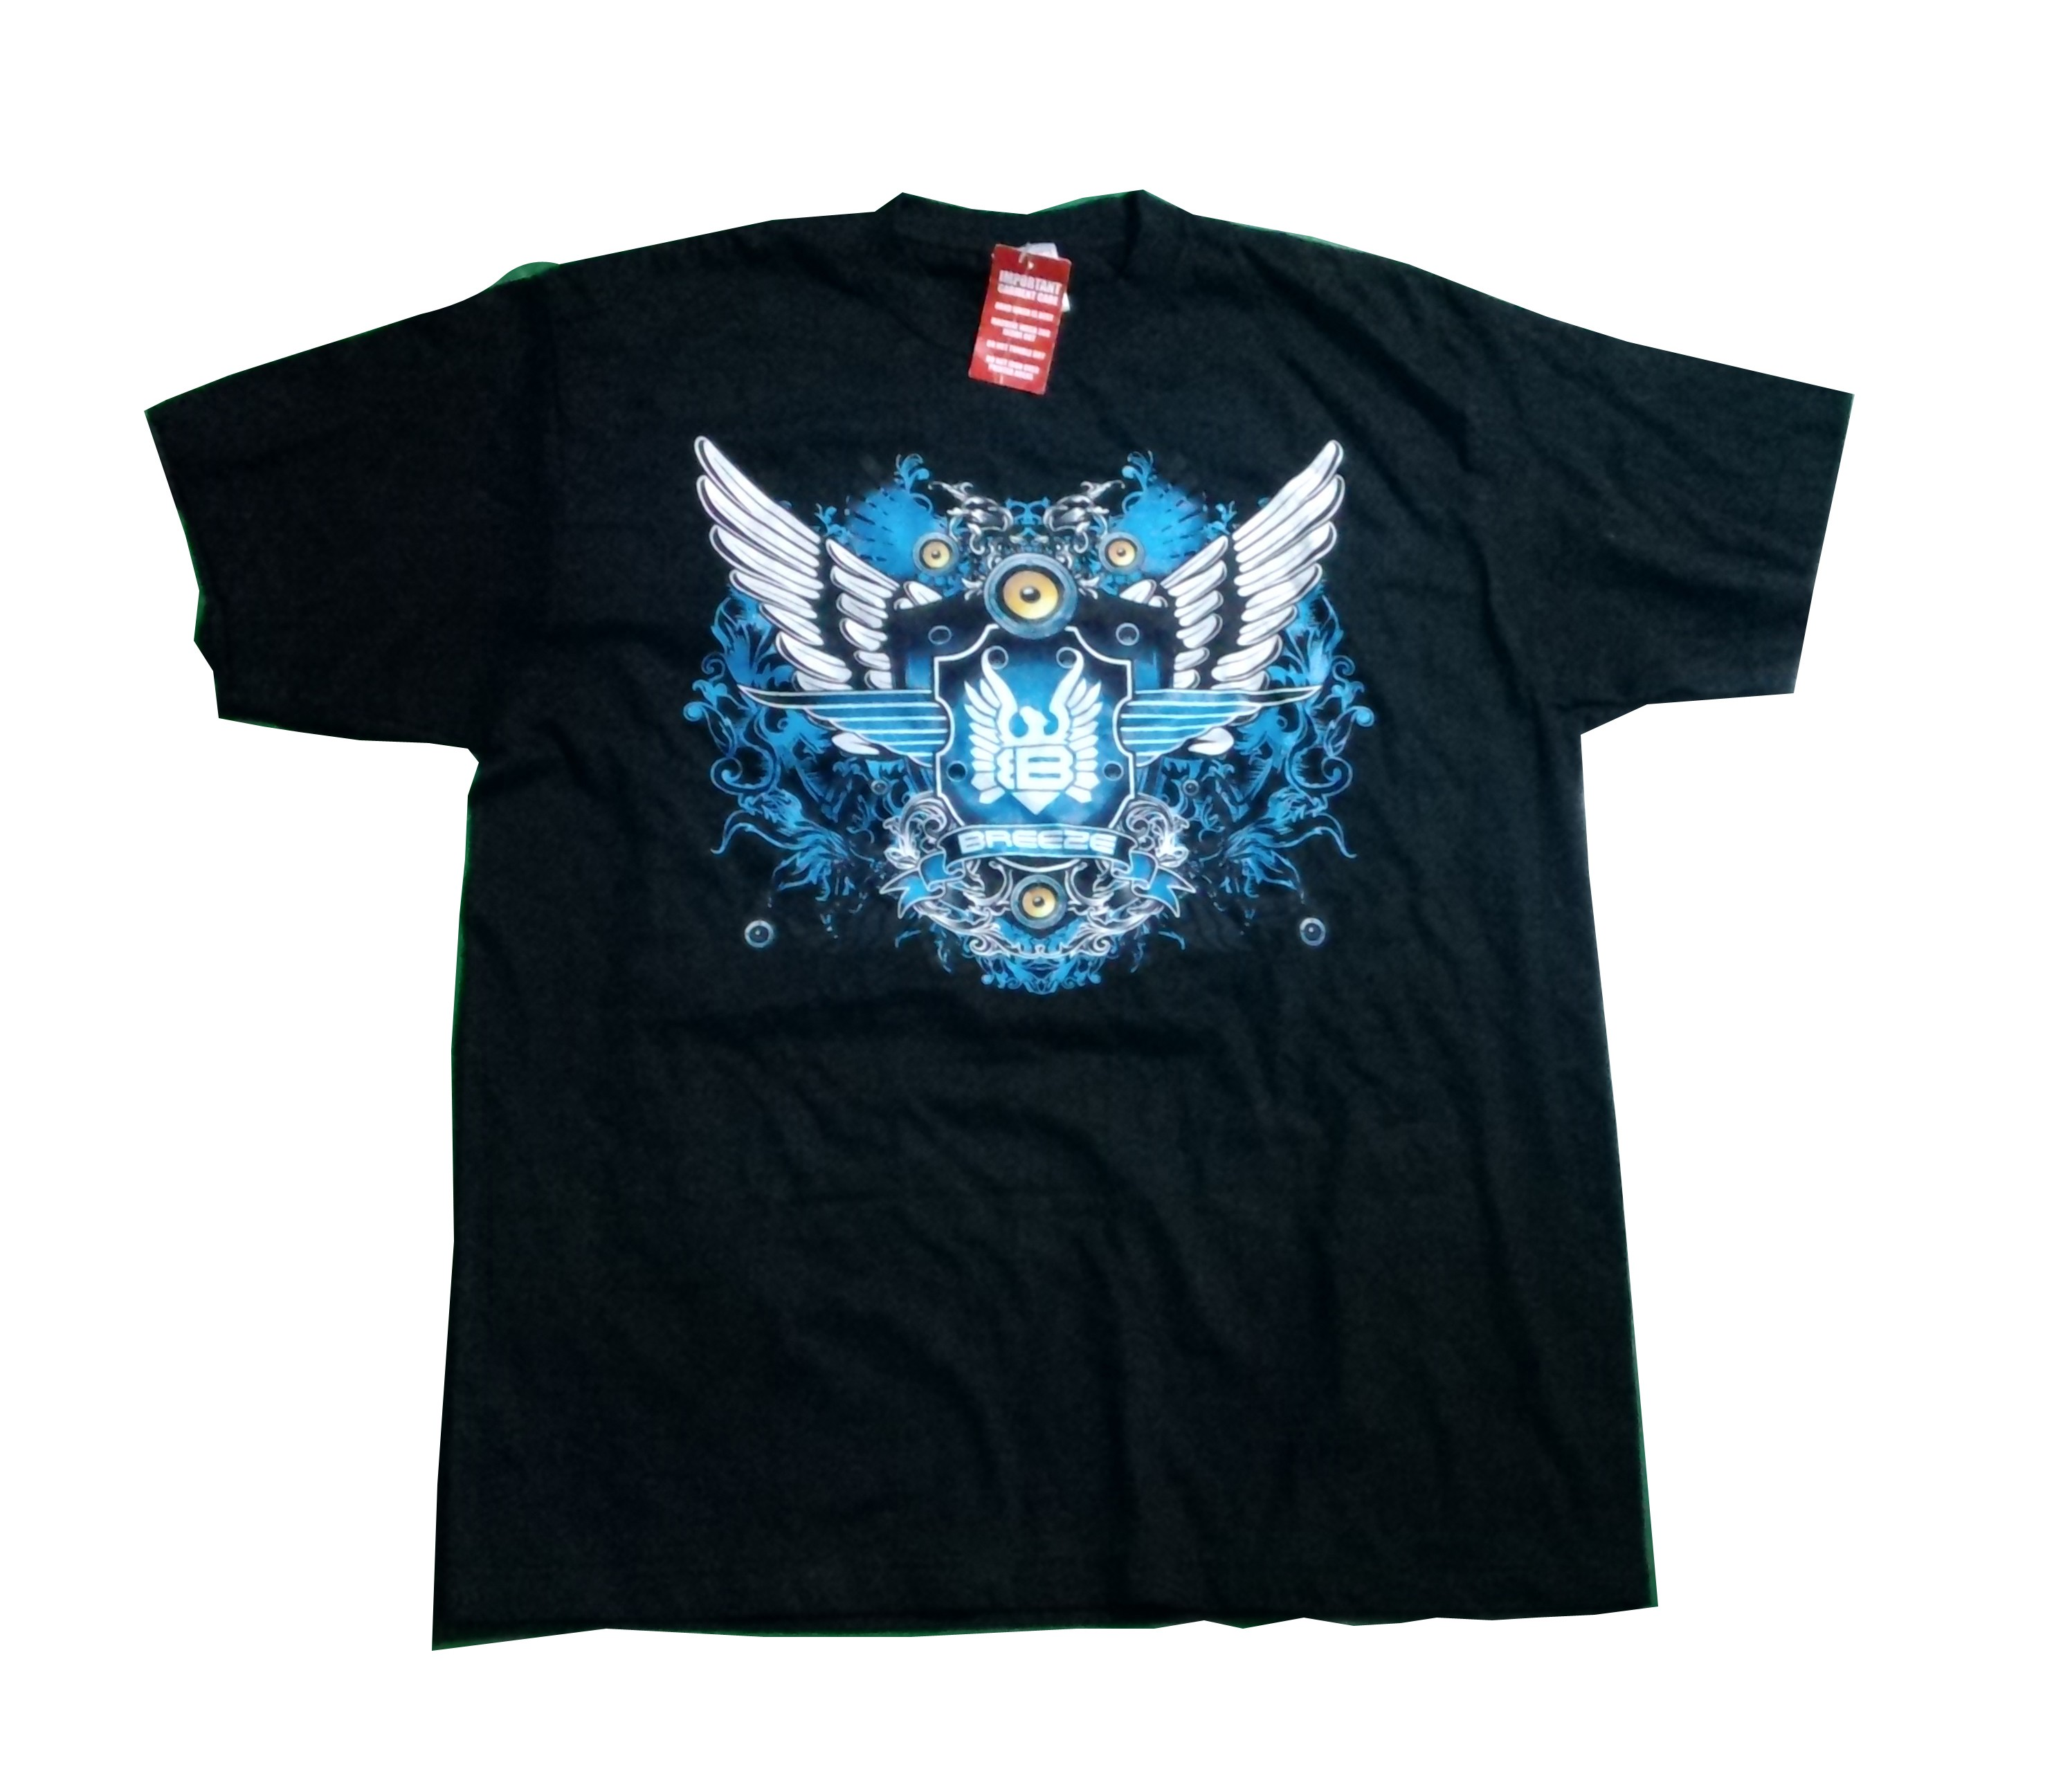 Direct to garment printer dtg printer k for Direct to garment t shirts